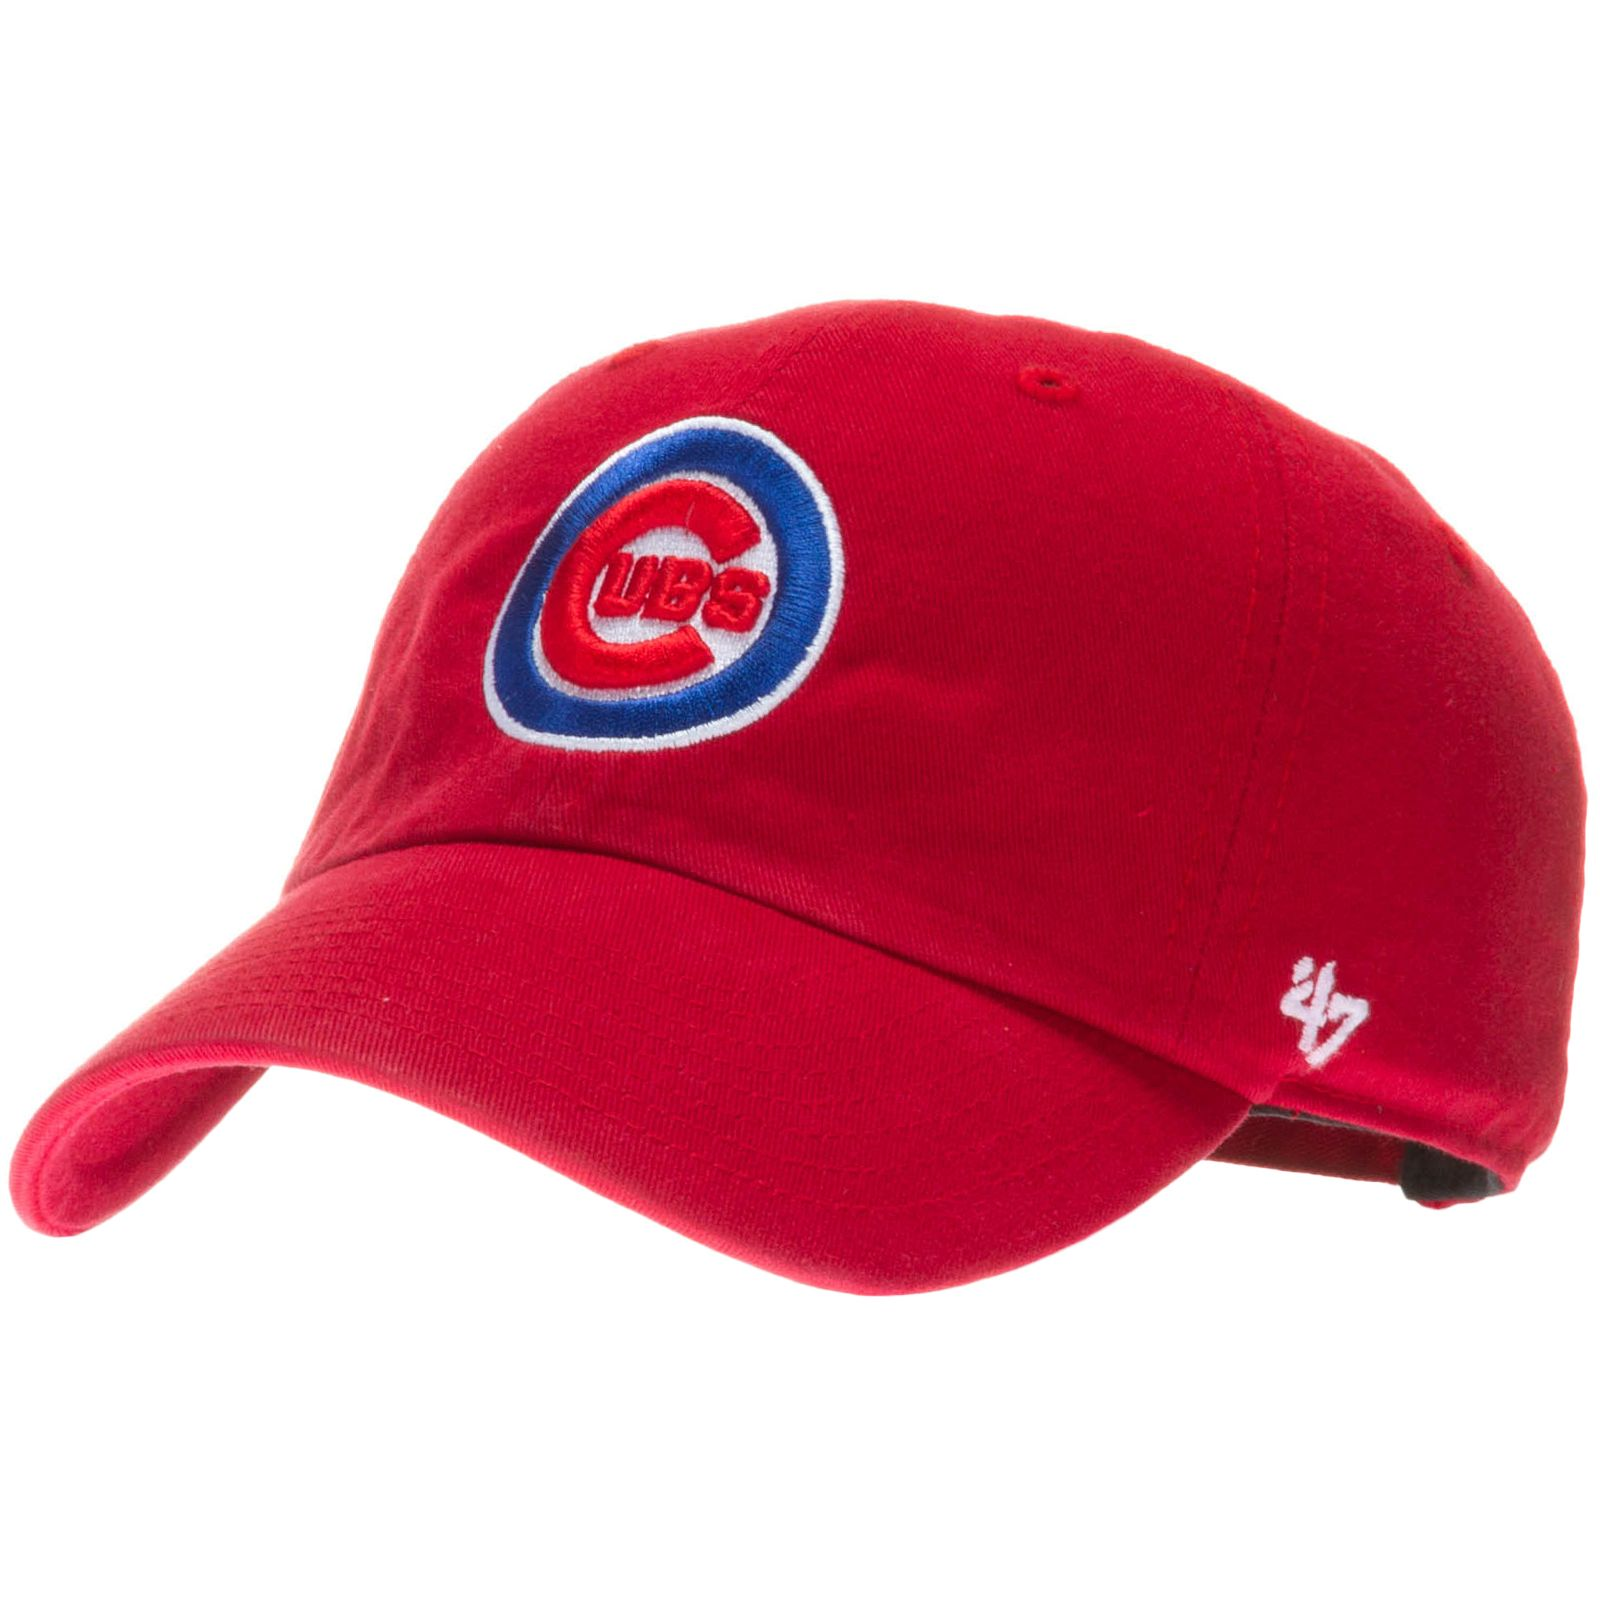 76887754 Chicago Cubs Red Relaxed Crown Bullseye Logo Adjustable Hat by ...